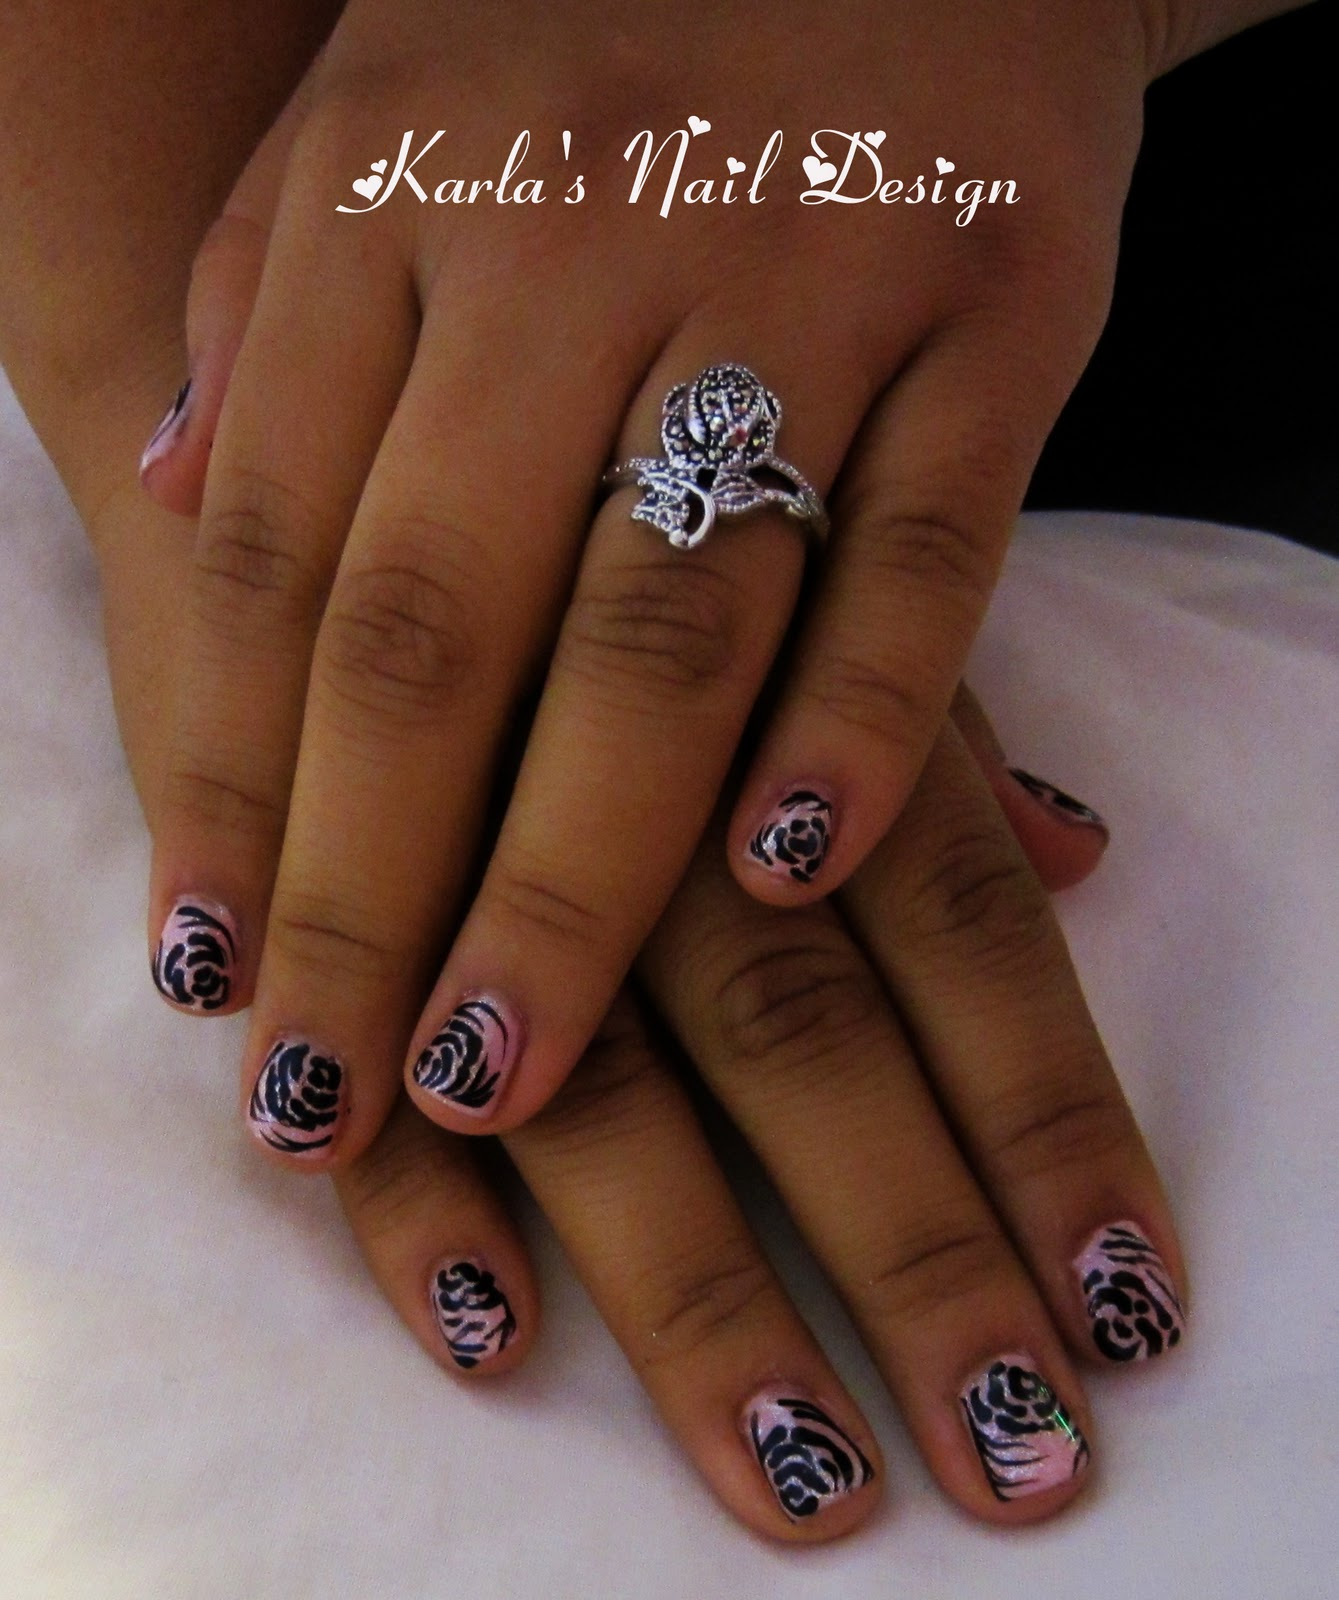 Prettyfulz Fall Nail Art Design 2011: Originail Kolors: Soak-off Gel Nail Designs